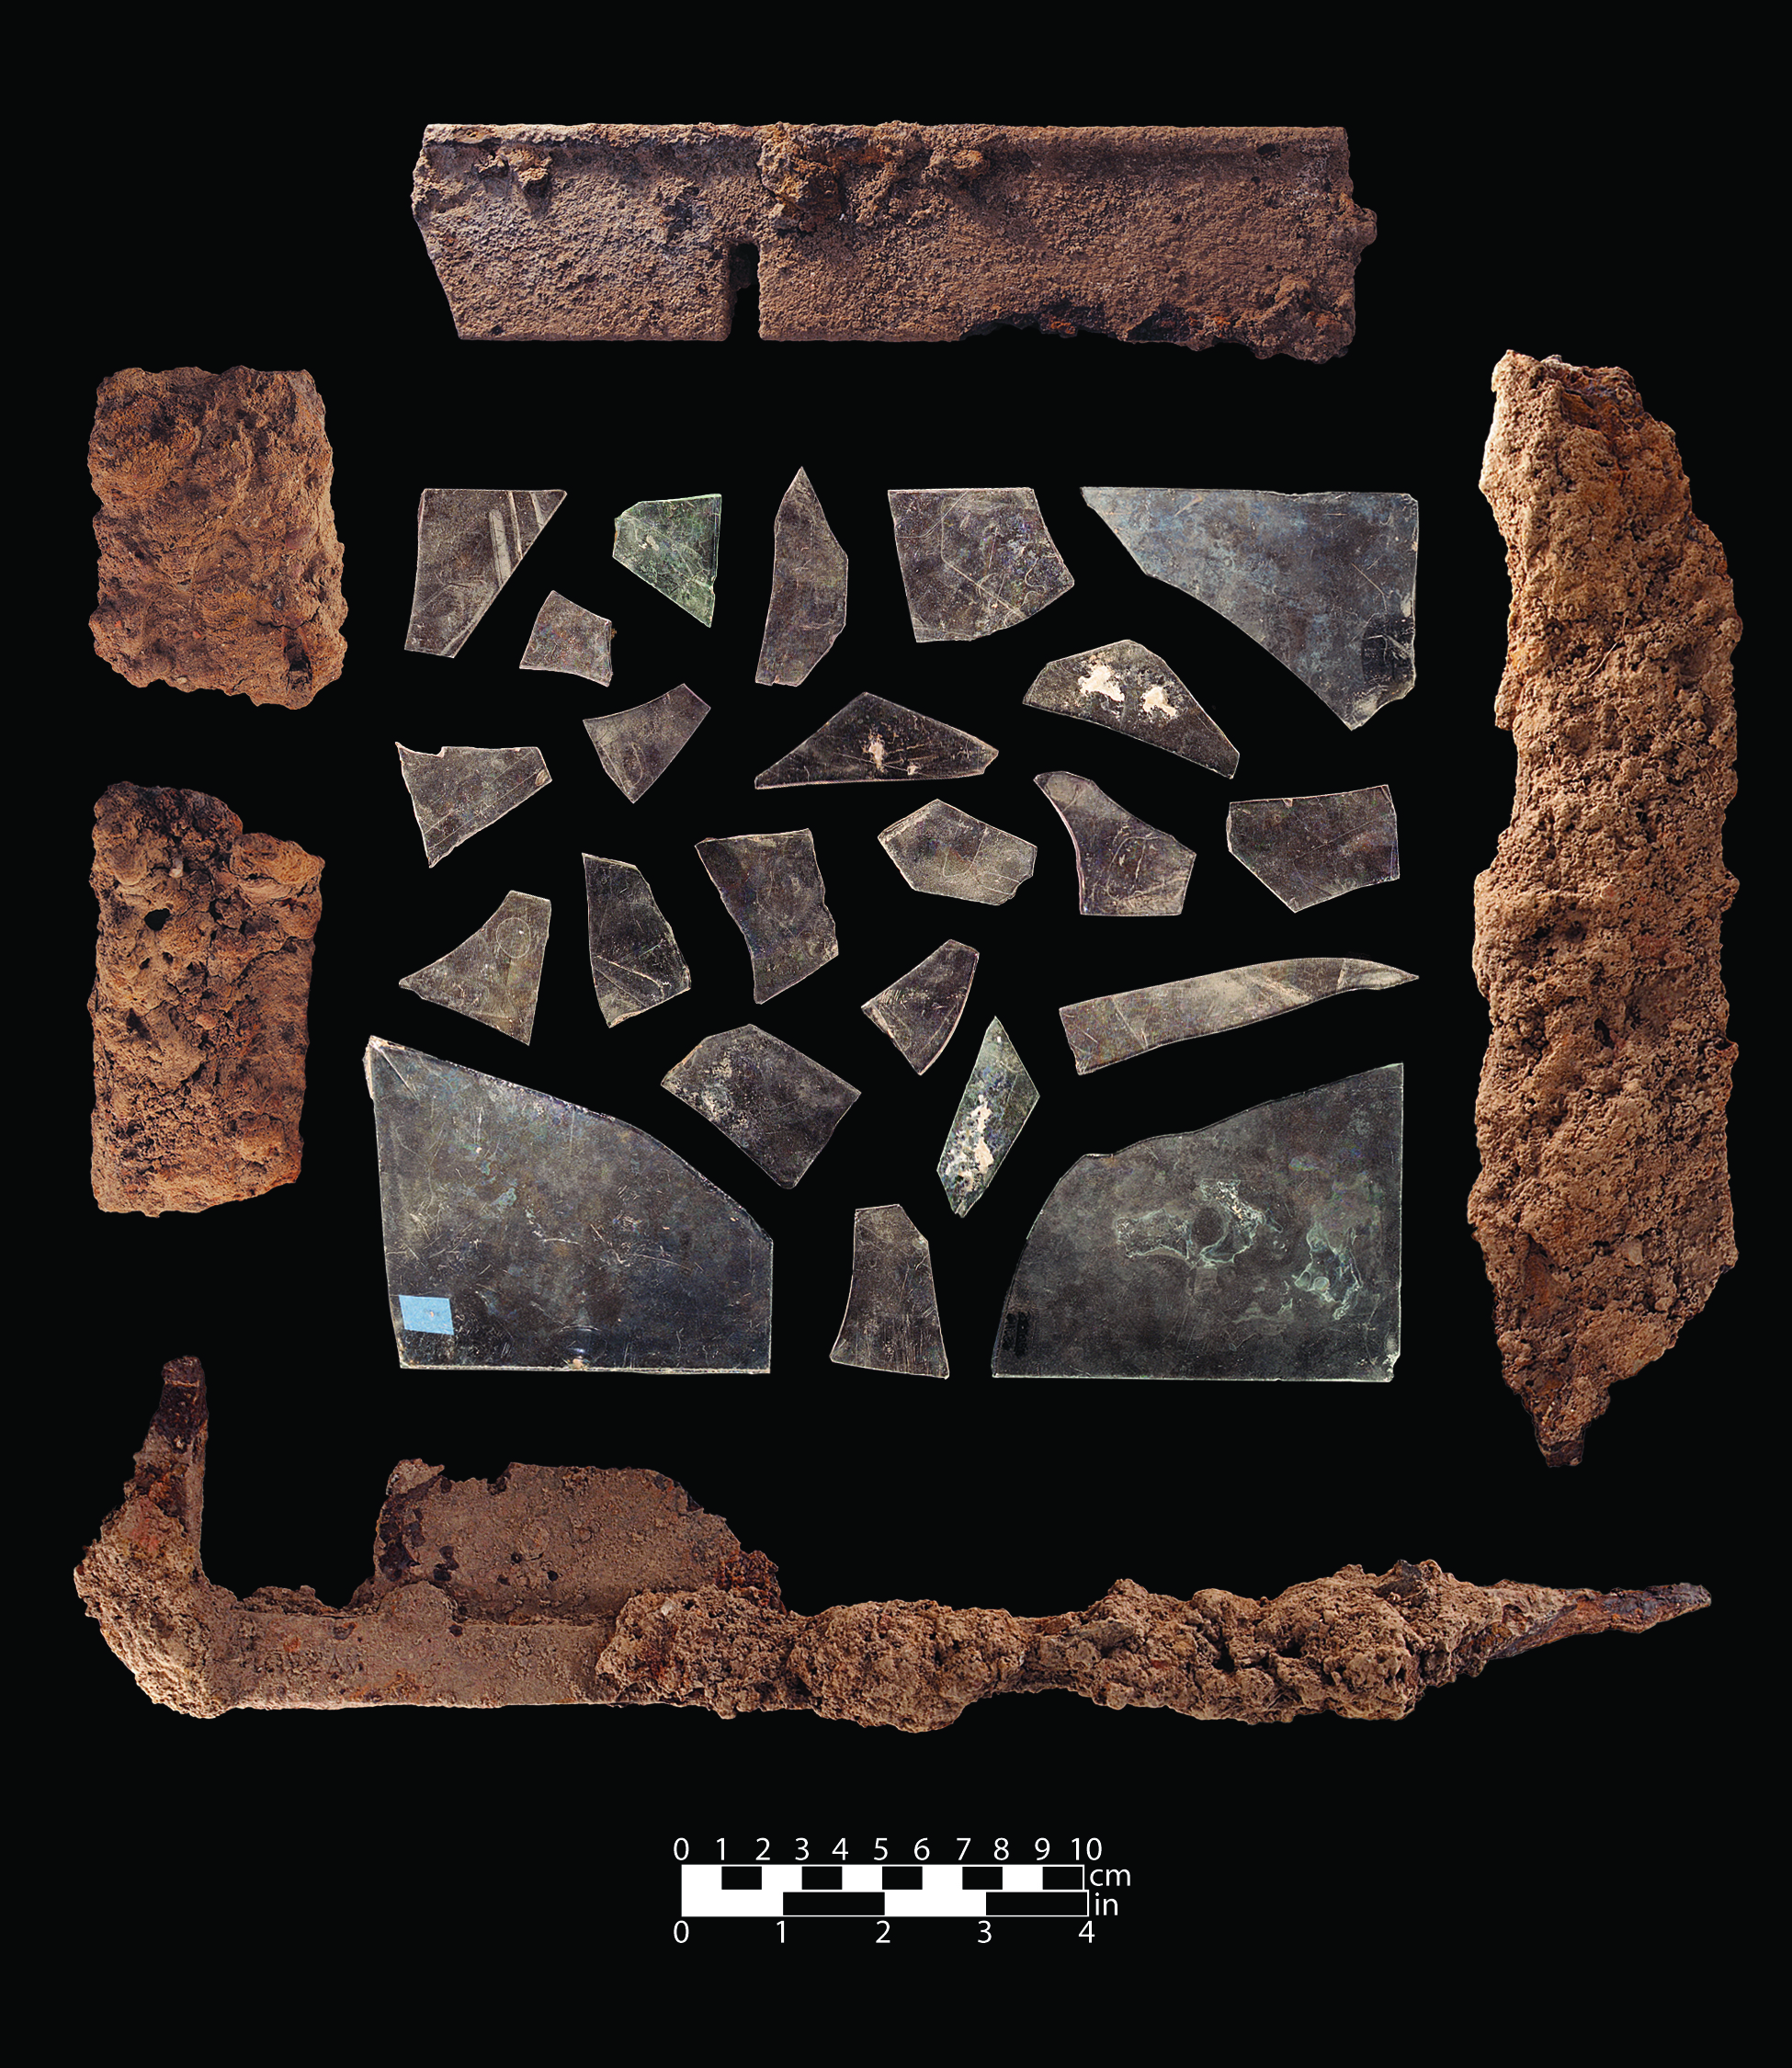 G1 Photo 26 (2013 excavations)  13043 D12 038_window glass and metal.jpg